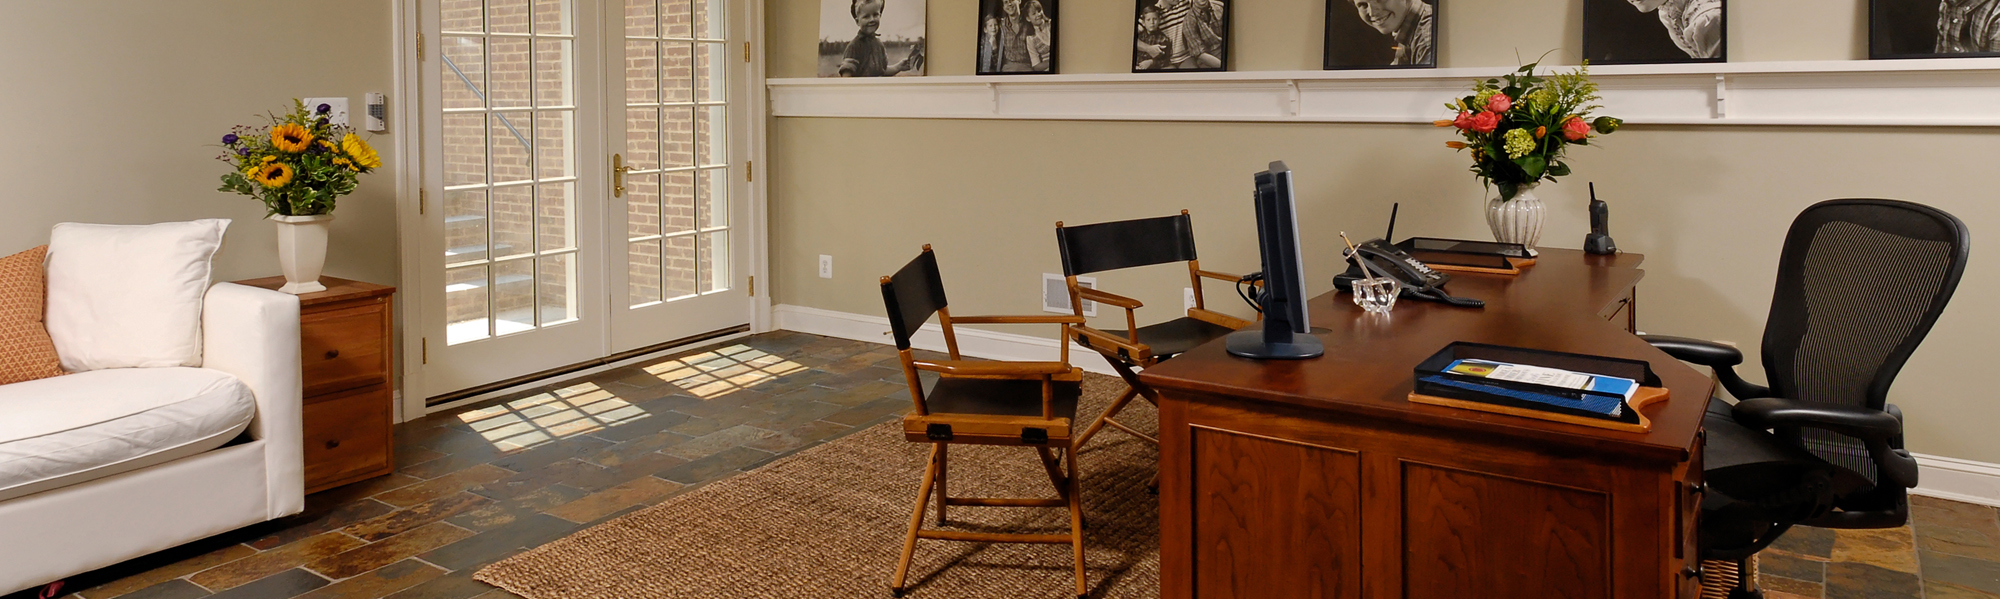 Home Office Renovation Intended Lower Level Renovation Creates Home Office In Mclean Virginia Bowa